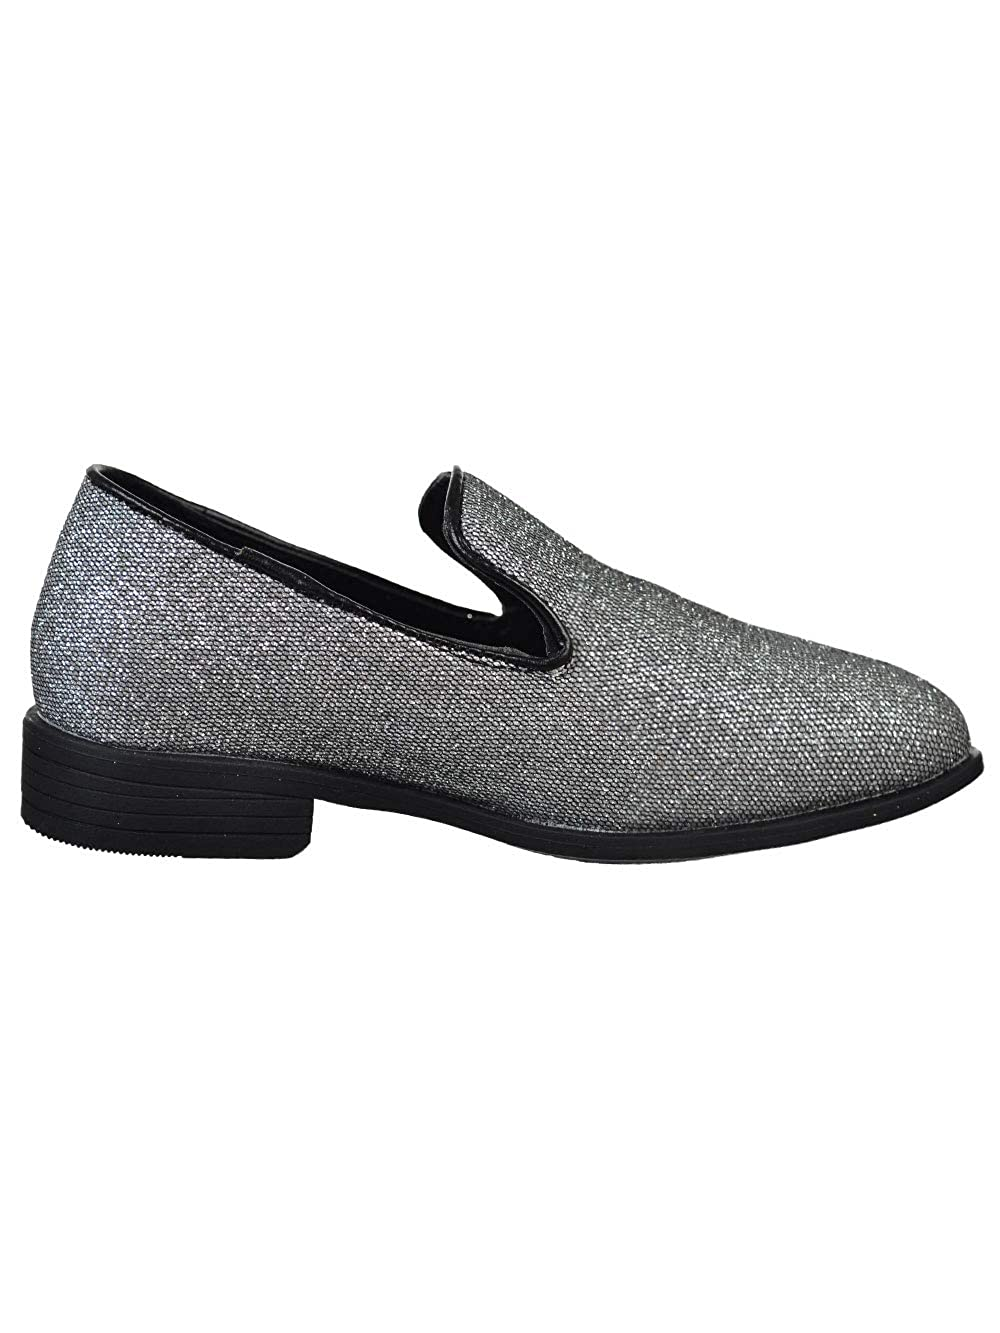 Jodano Collection Boys Loafers